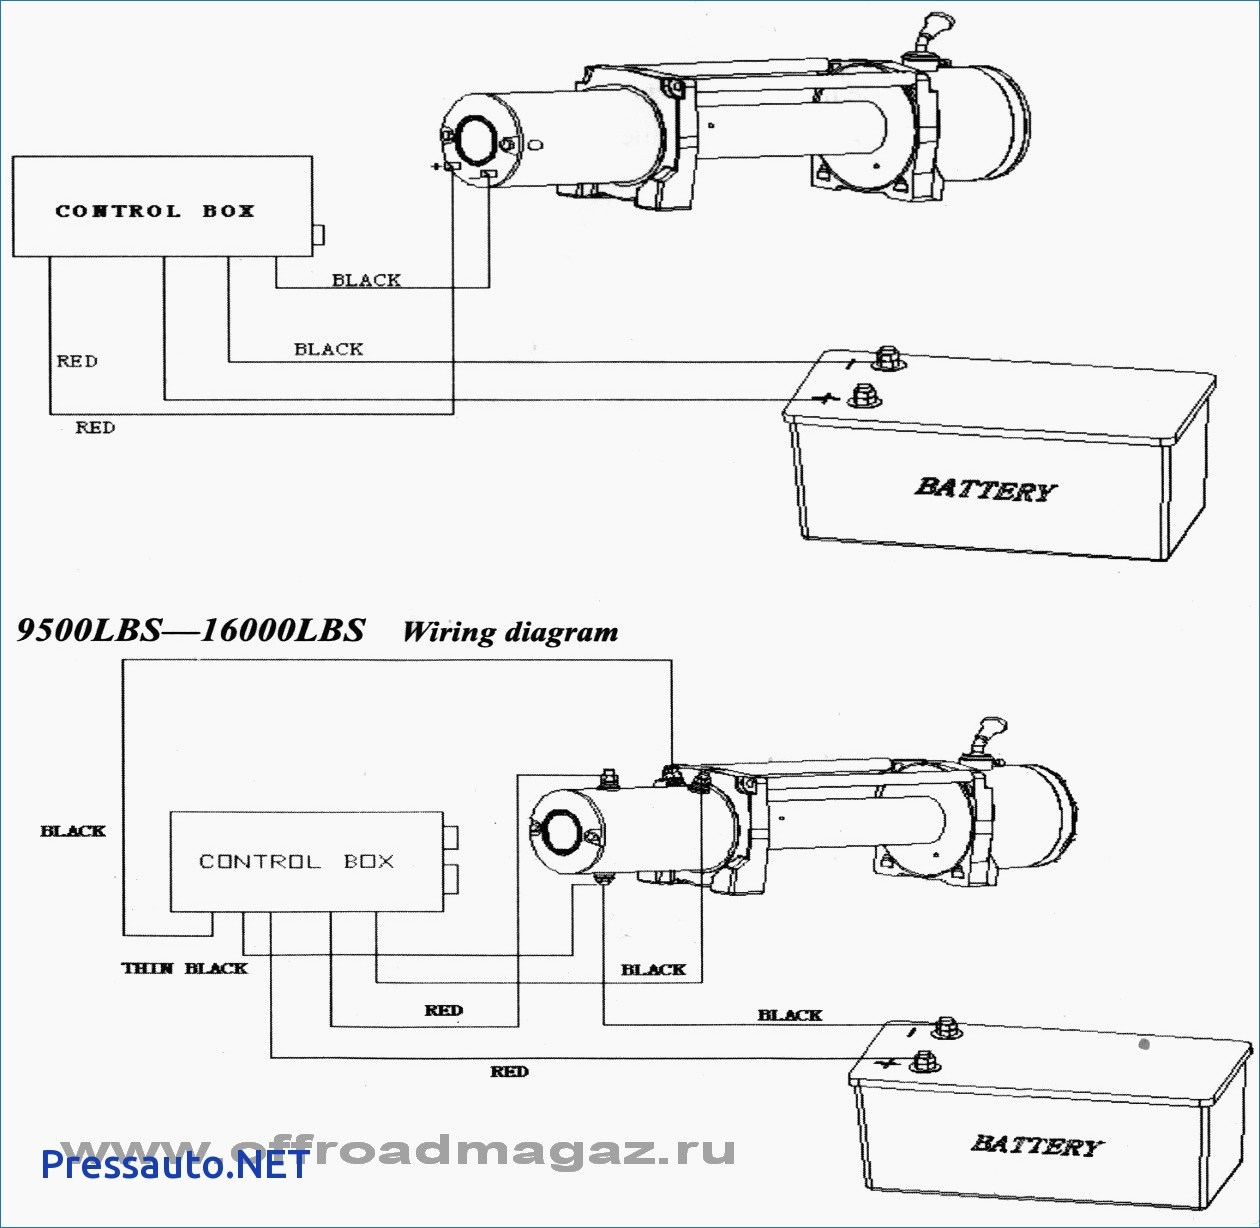 12 Volt    Winch       solenoid       Wiring       Diagram      Free    Wiring       Diagram